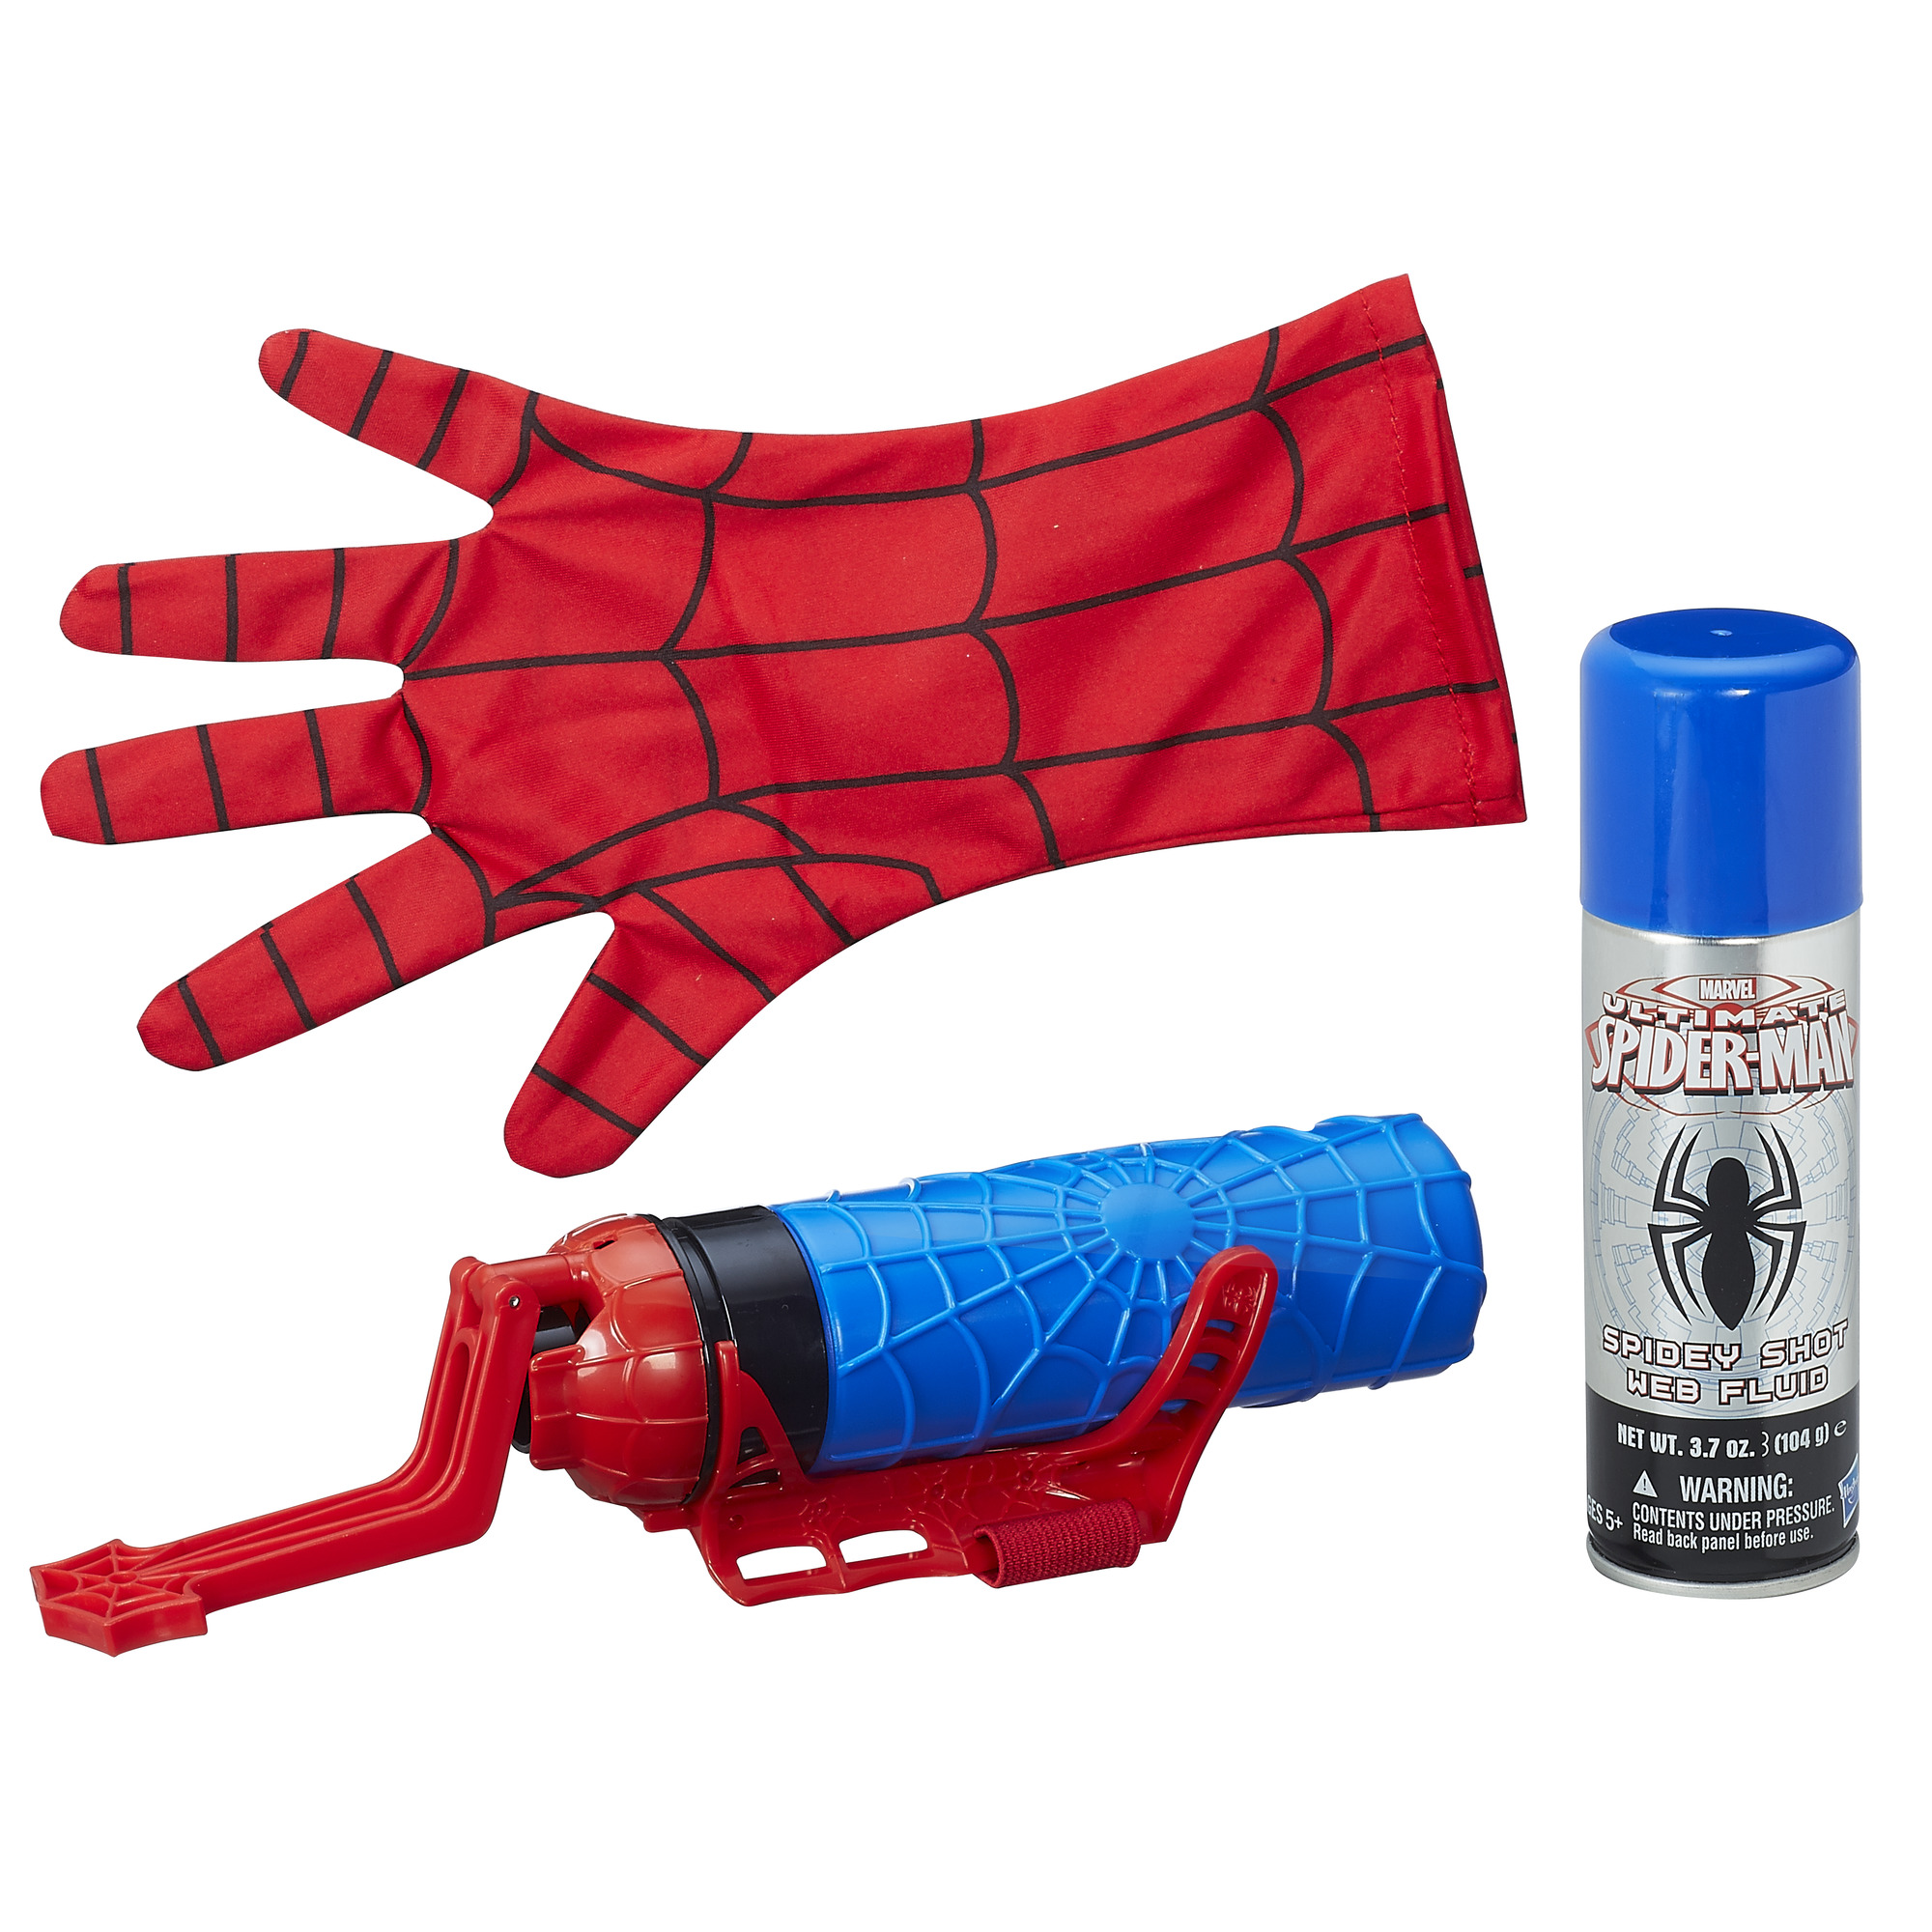 Walmart's Hot Toy List Is Here and OMG It's Not Even Labor Day spider-man-super-web-slinger